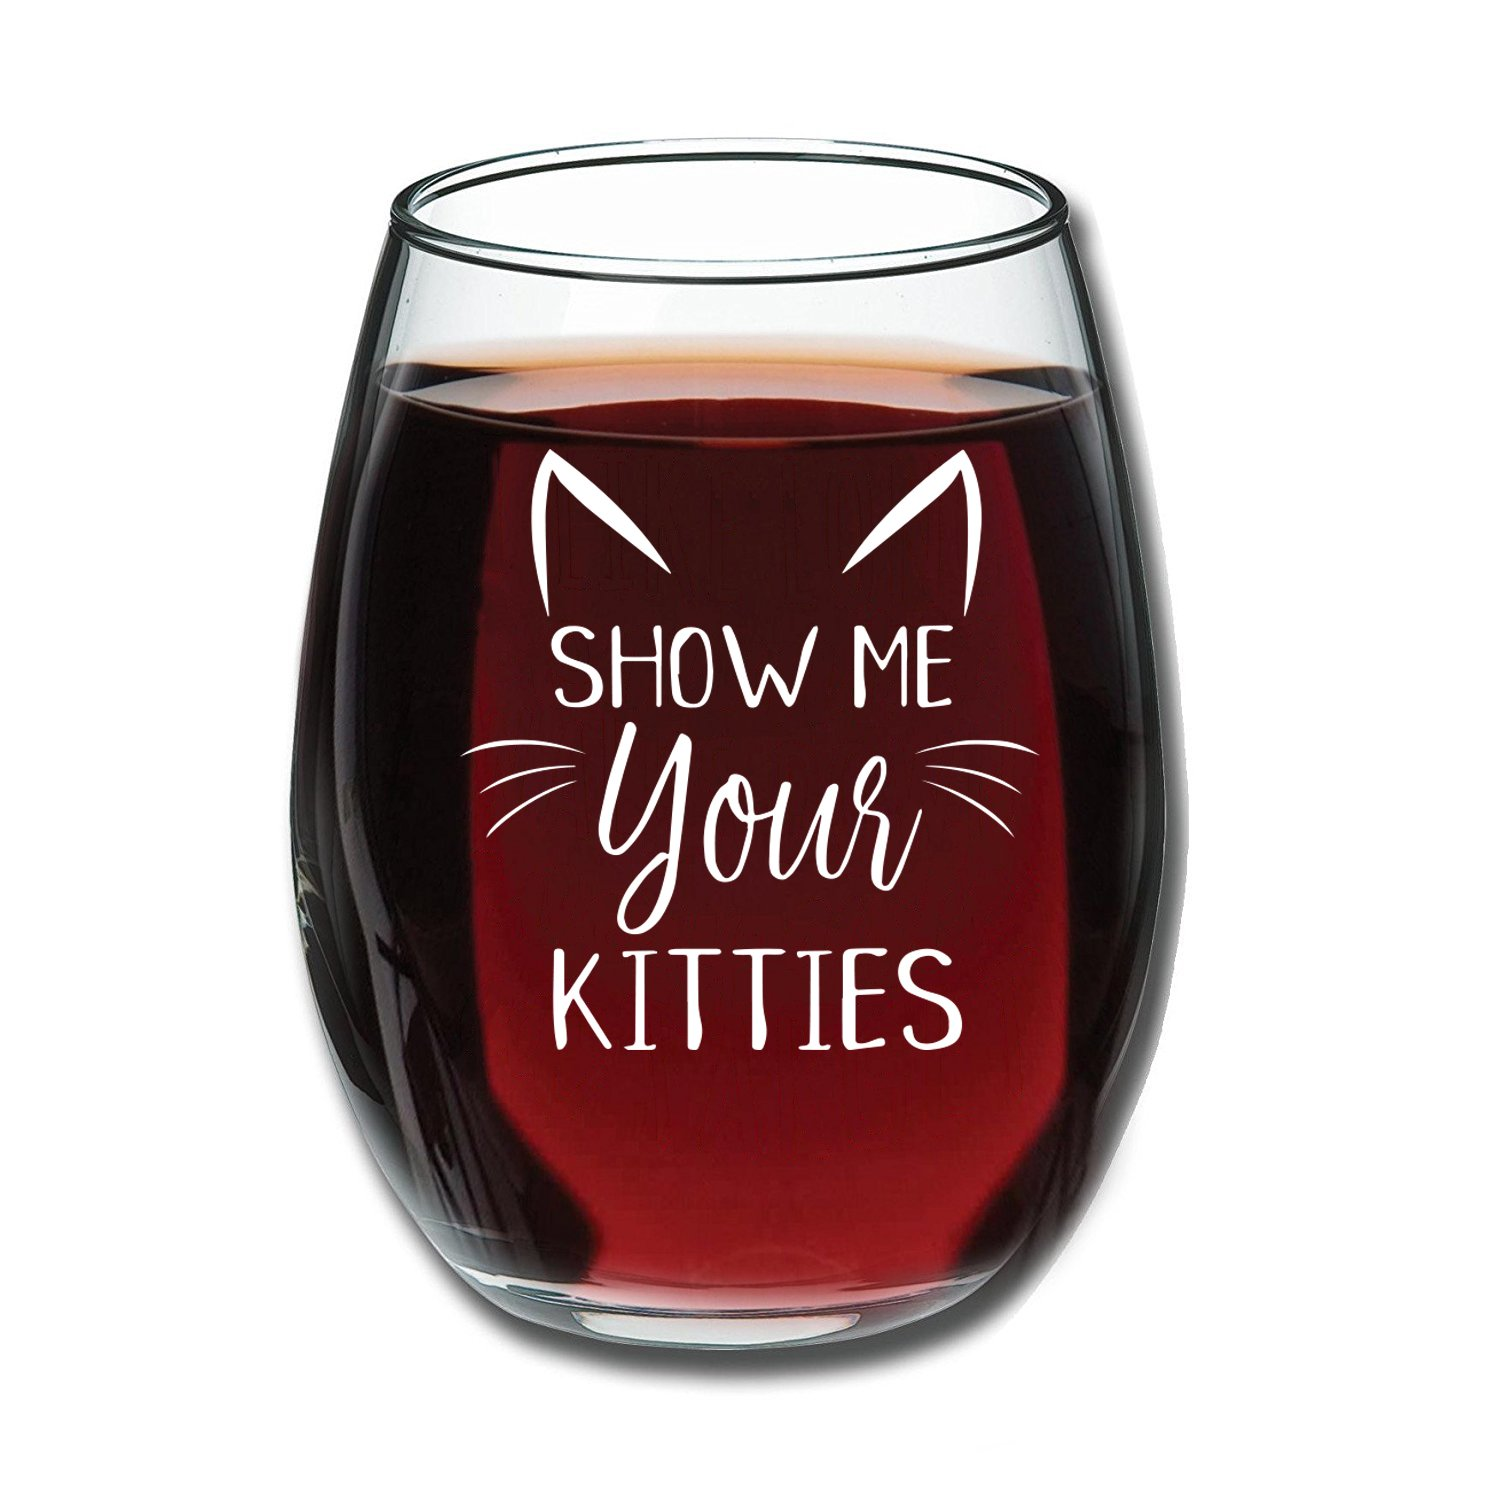 Show Me Your Kitties - Funny Wine Glass 15oz - Christmas Gift Idea for Cat Lovers - Perfect Birthday Gift for Women, Girlfriend, Wife - Gag Gift - Evening Mug by Funny Mugs, LOL